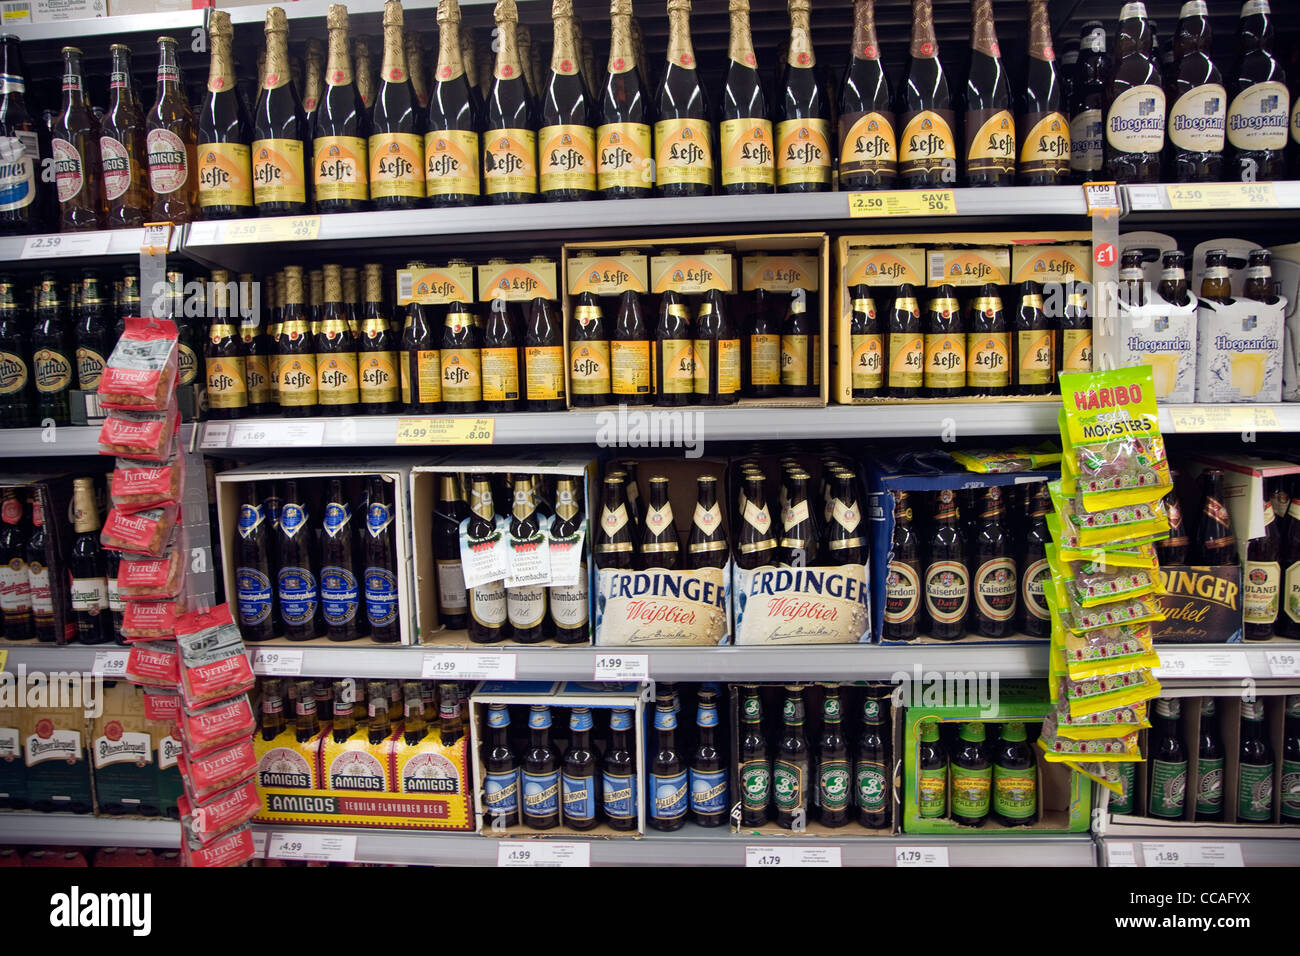 Imported luxury beer display supermarket shop - Stock Image